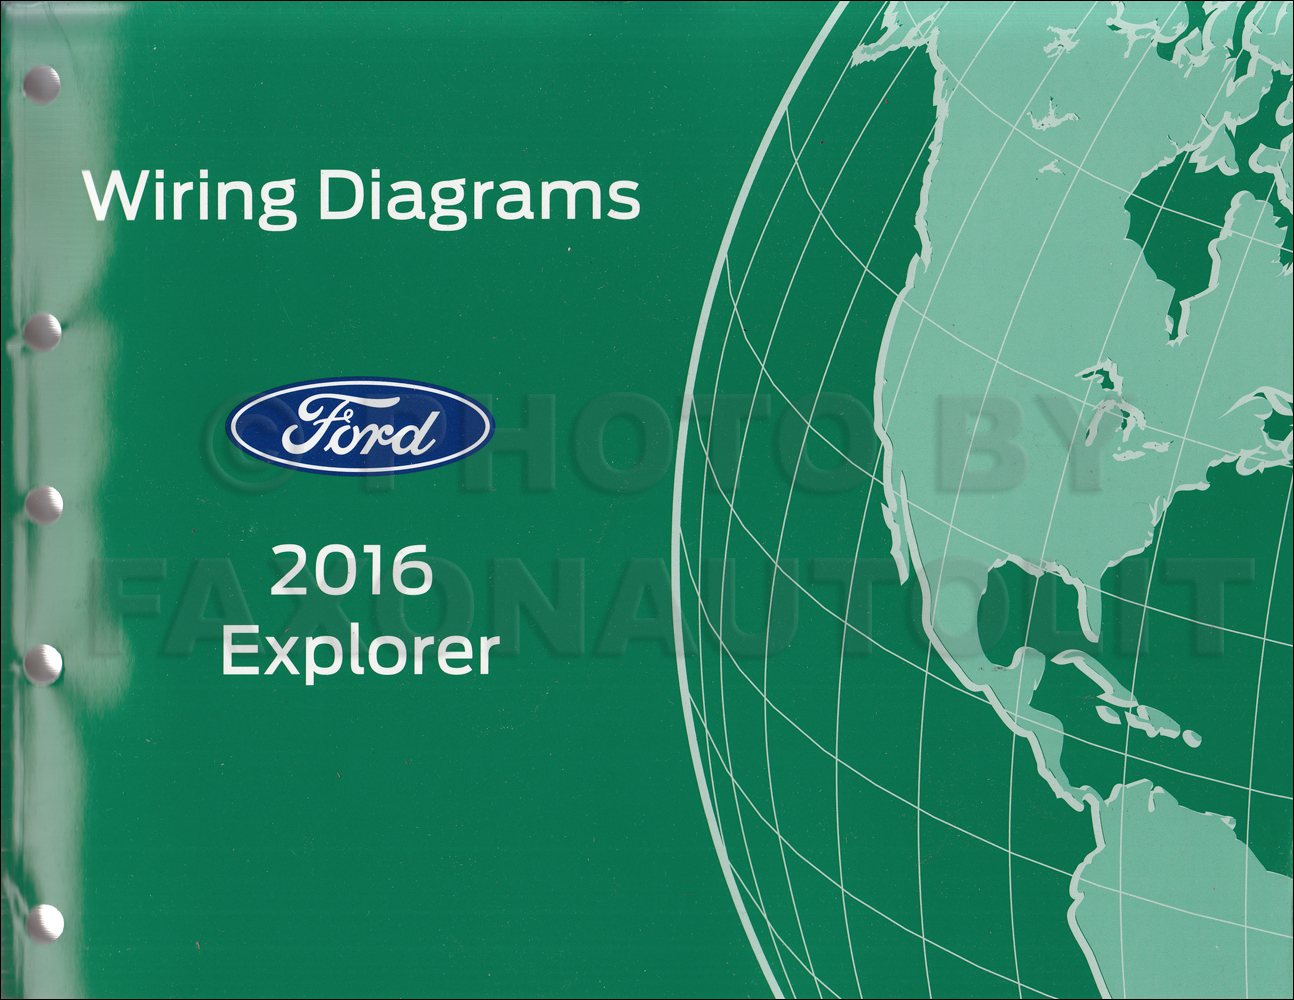 2016 ford explorer wiring diagram manual original 2018 ford explorer wiring diagram 2016 Ford Explorer Wiring Diagram #2